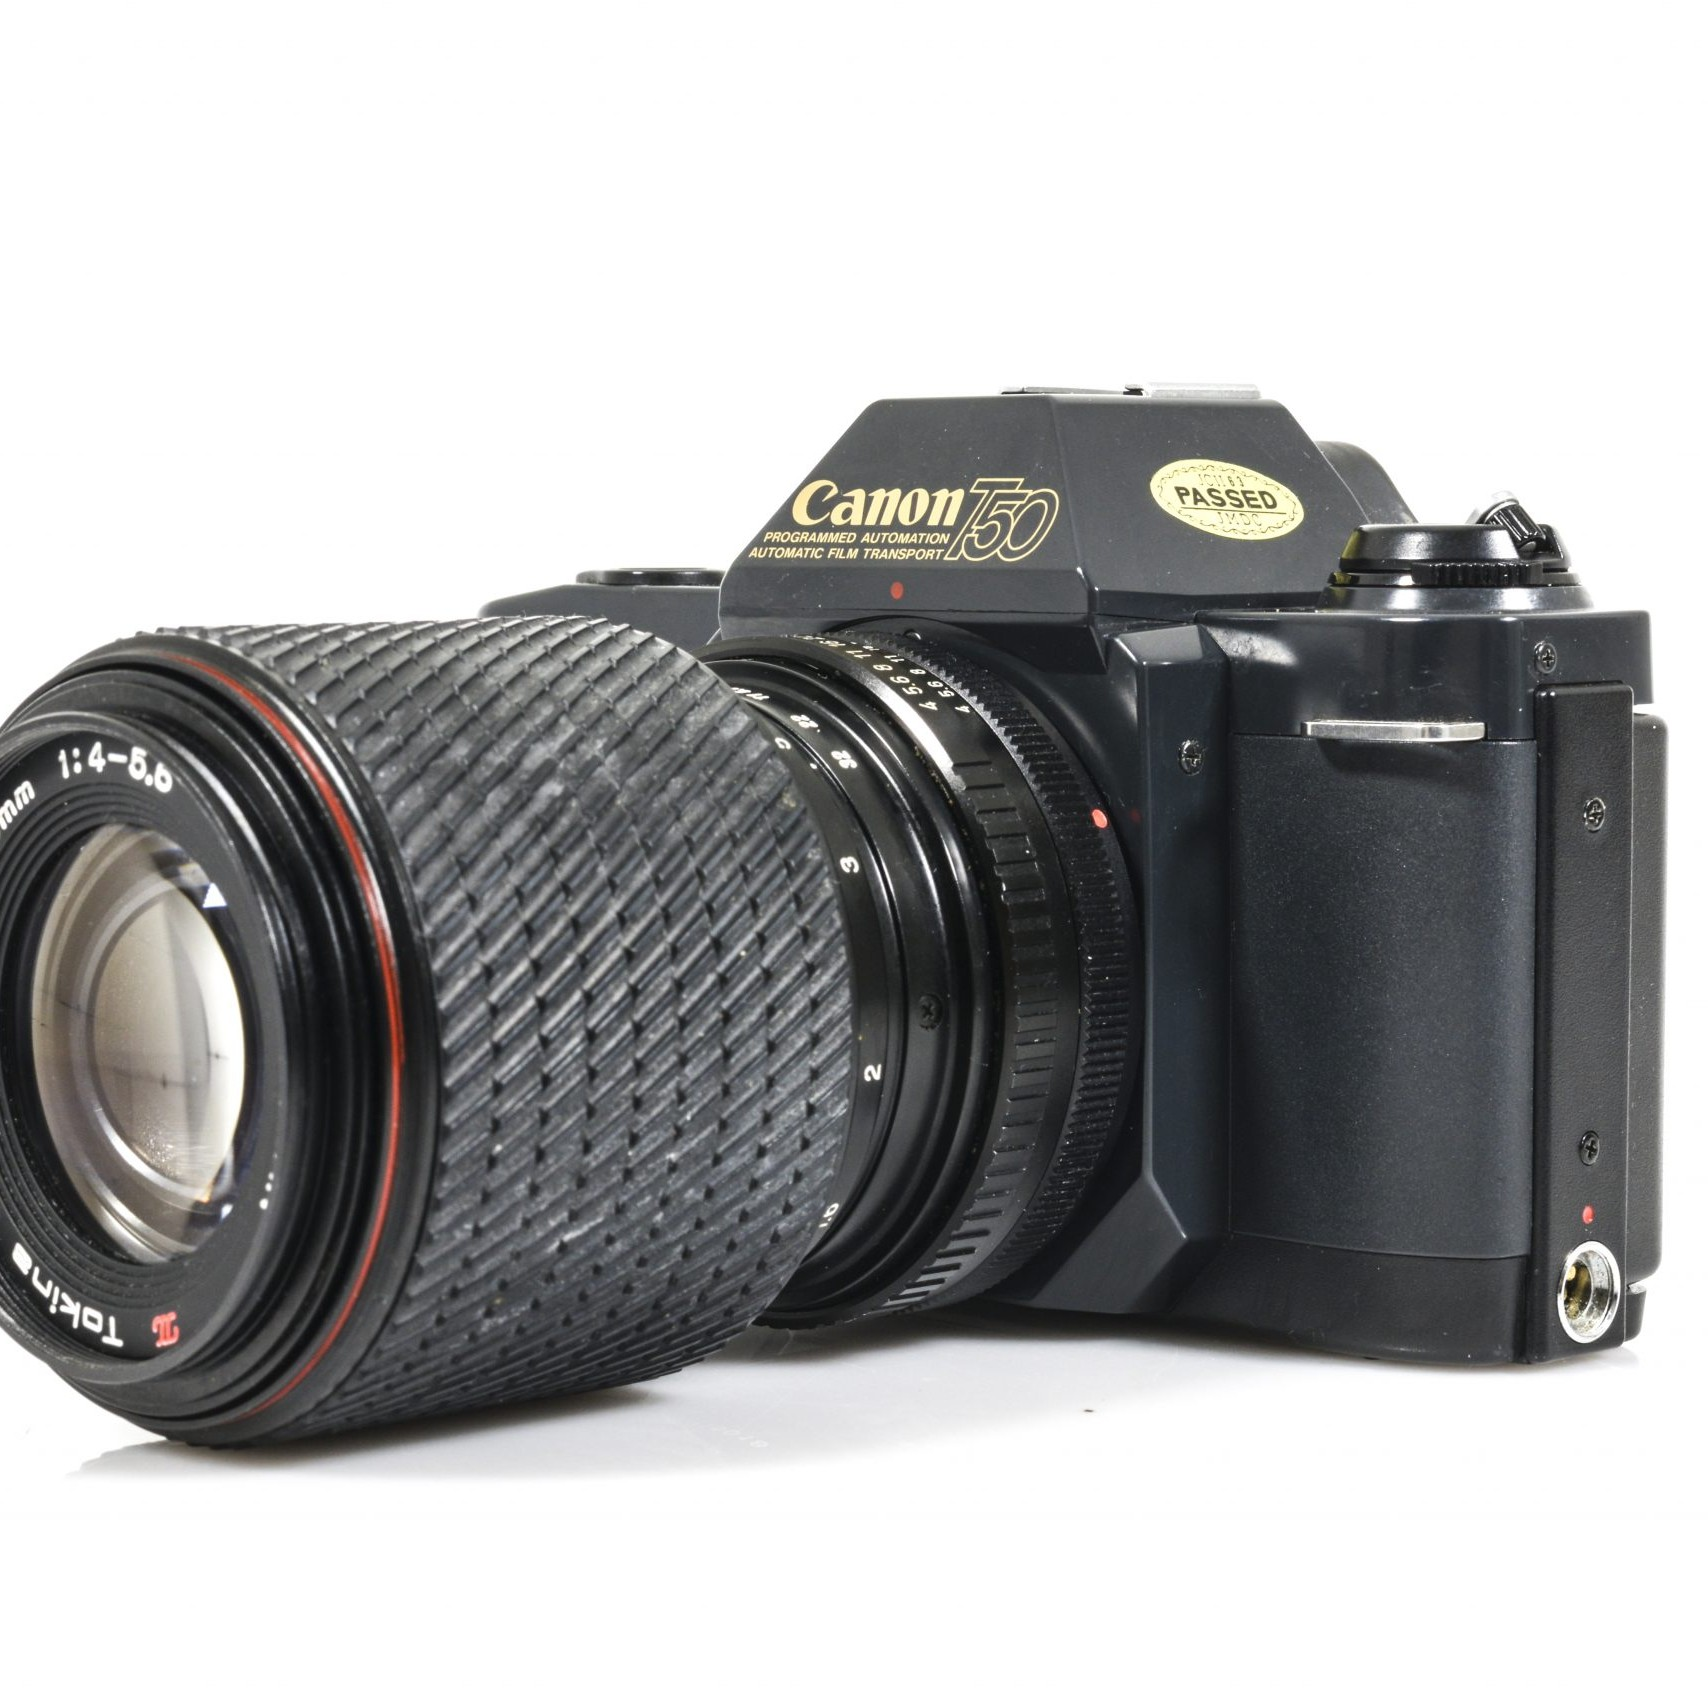 Canon T50 35mm Film Camera with Tokina 70-210mm F4-5.6 Lens